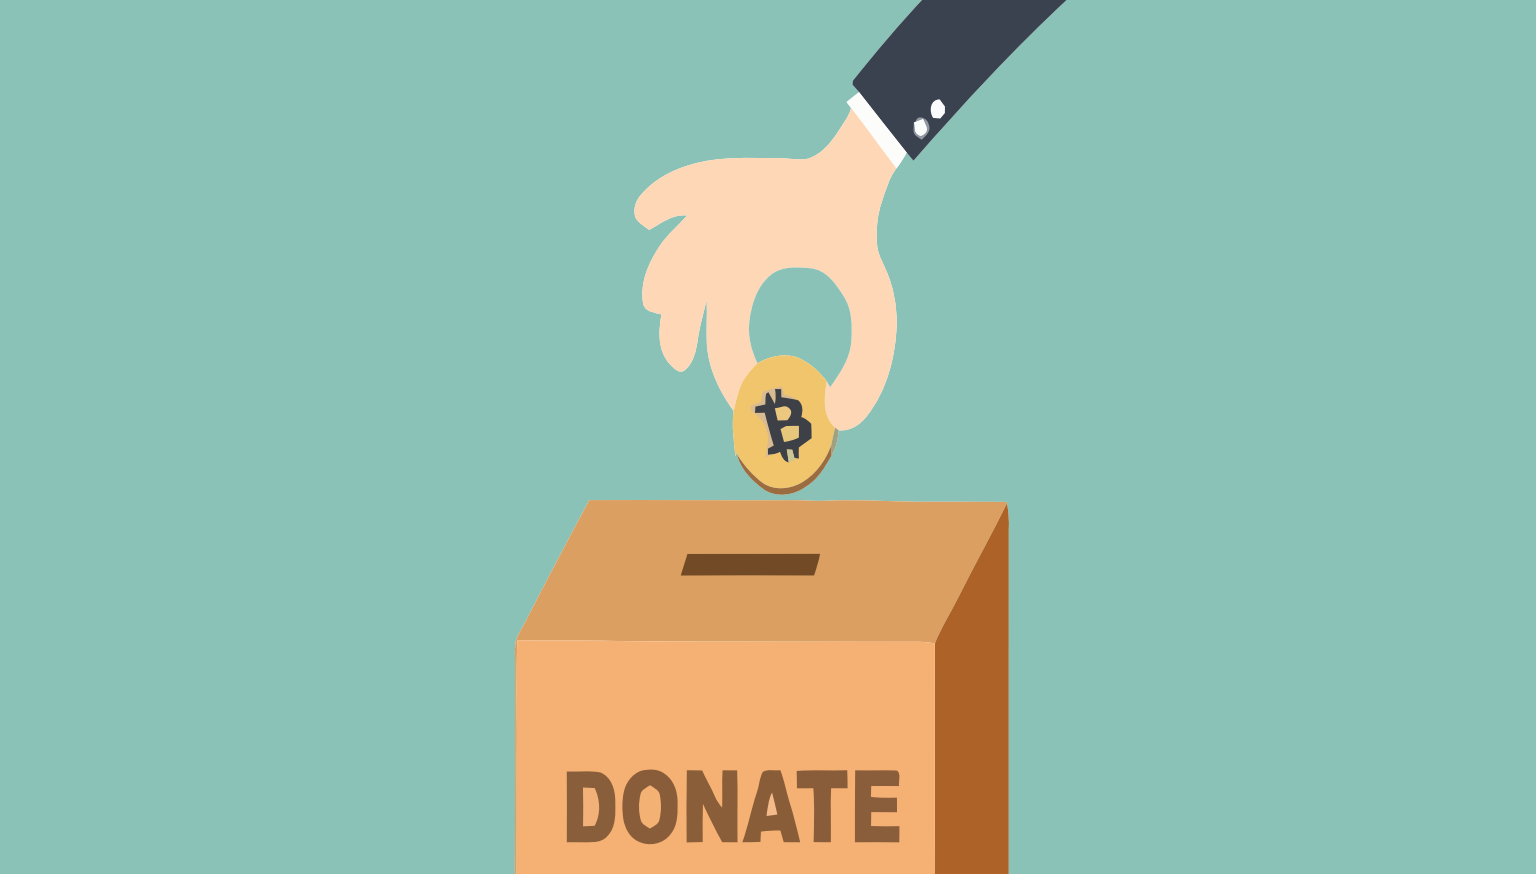 Bitcoin for Charity: The Case of BitHope.org